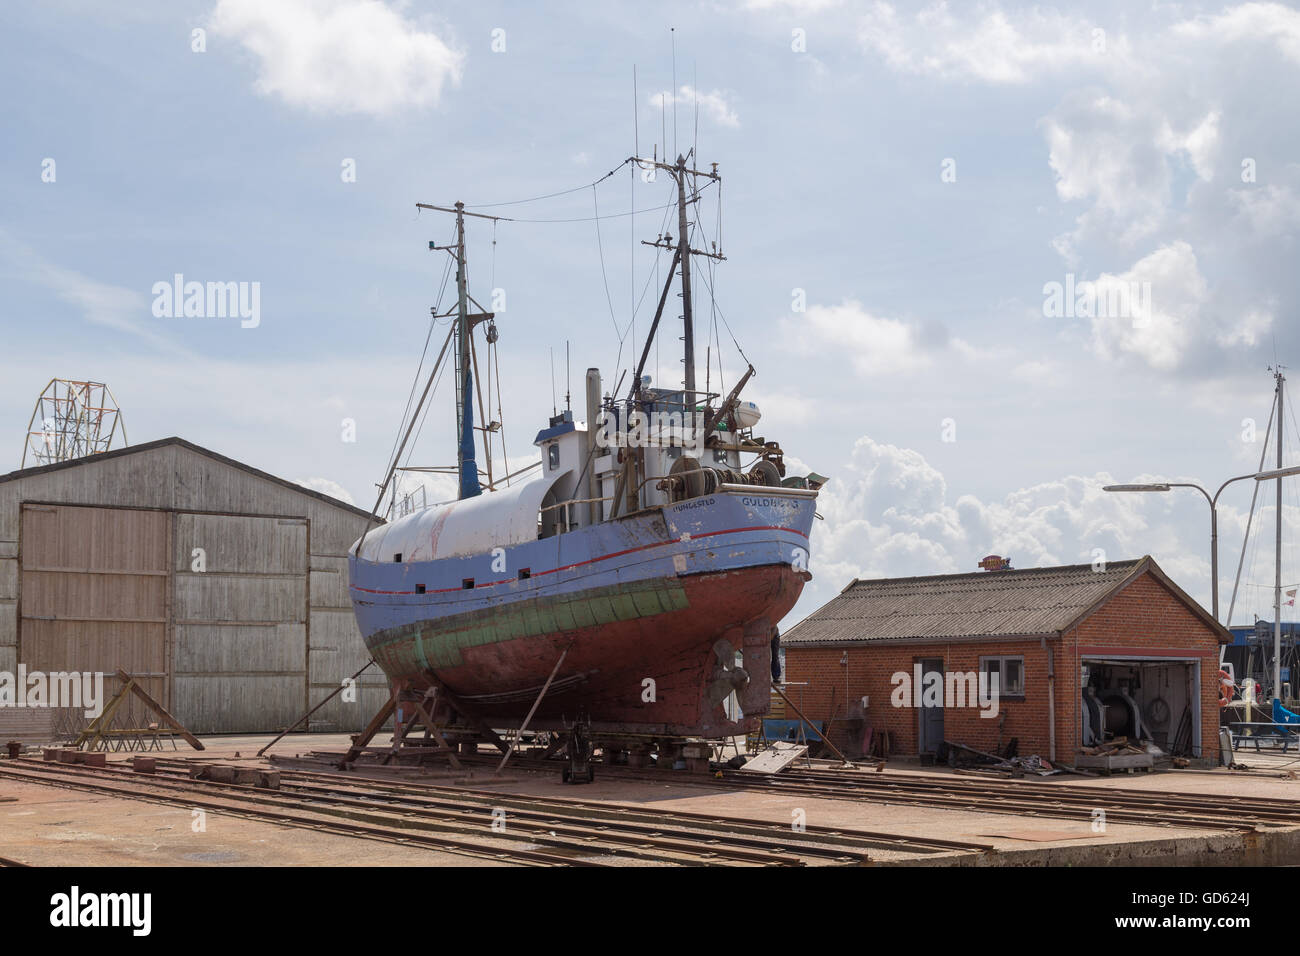 Hundested, Denmark - July 11, 2016: A boat in the dry dock. - Stock Image